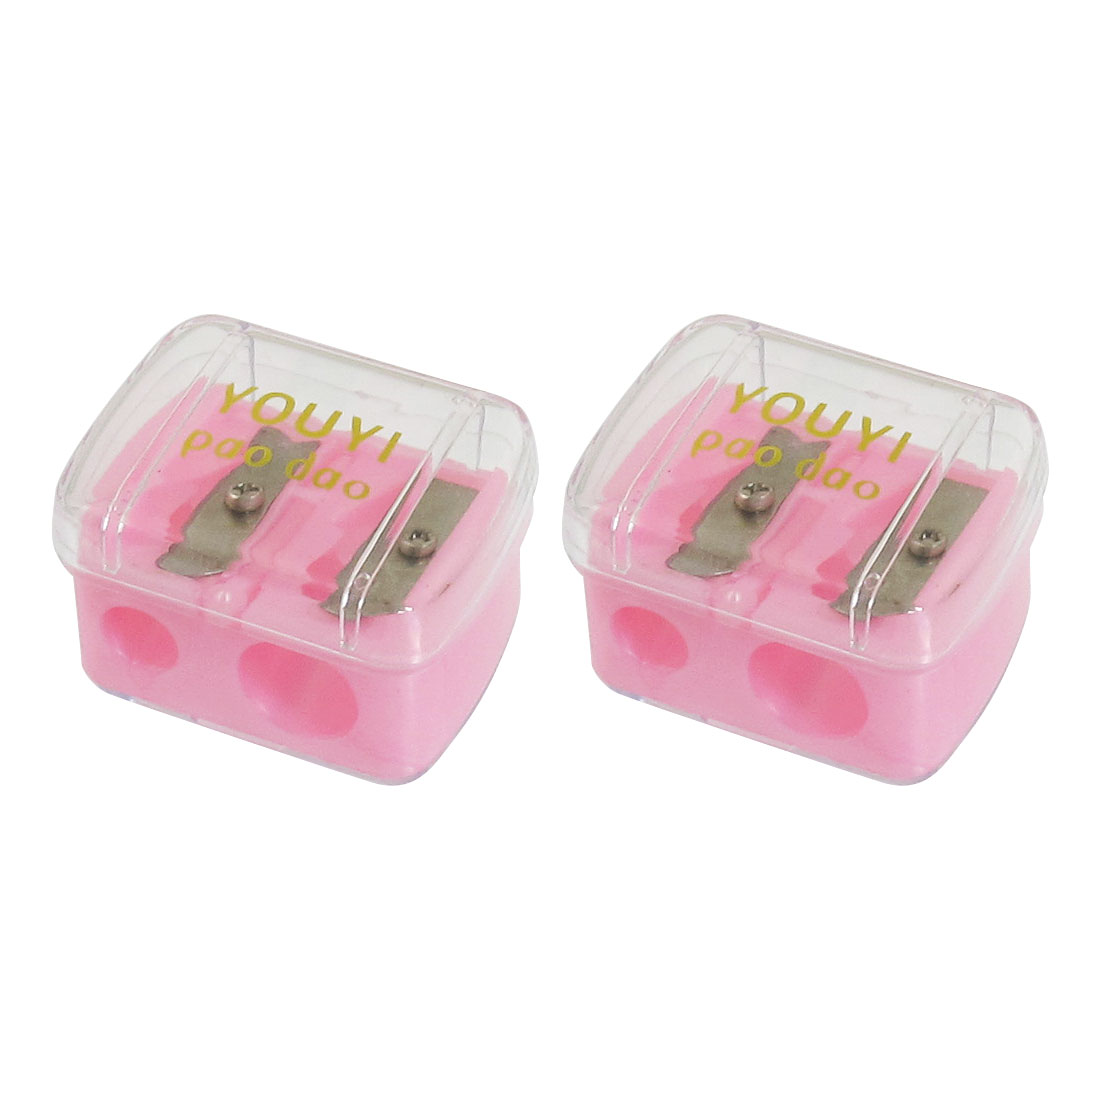 2 Pcs 12mm 8mm Holes Plastic Manual Pencil Sharpener Pink Clear